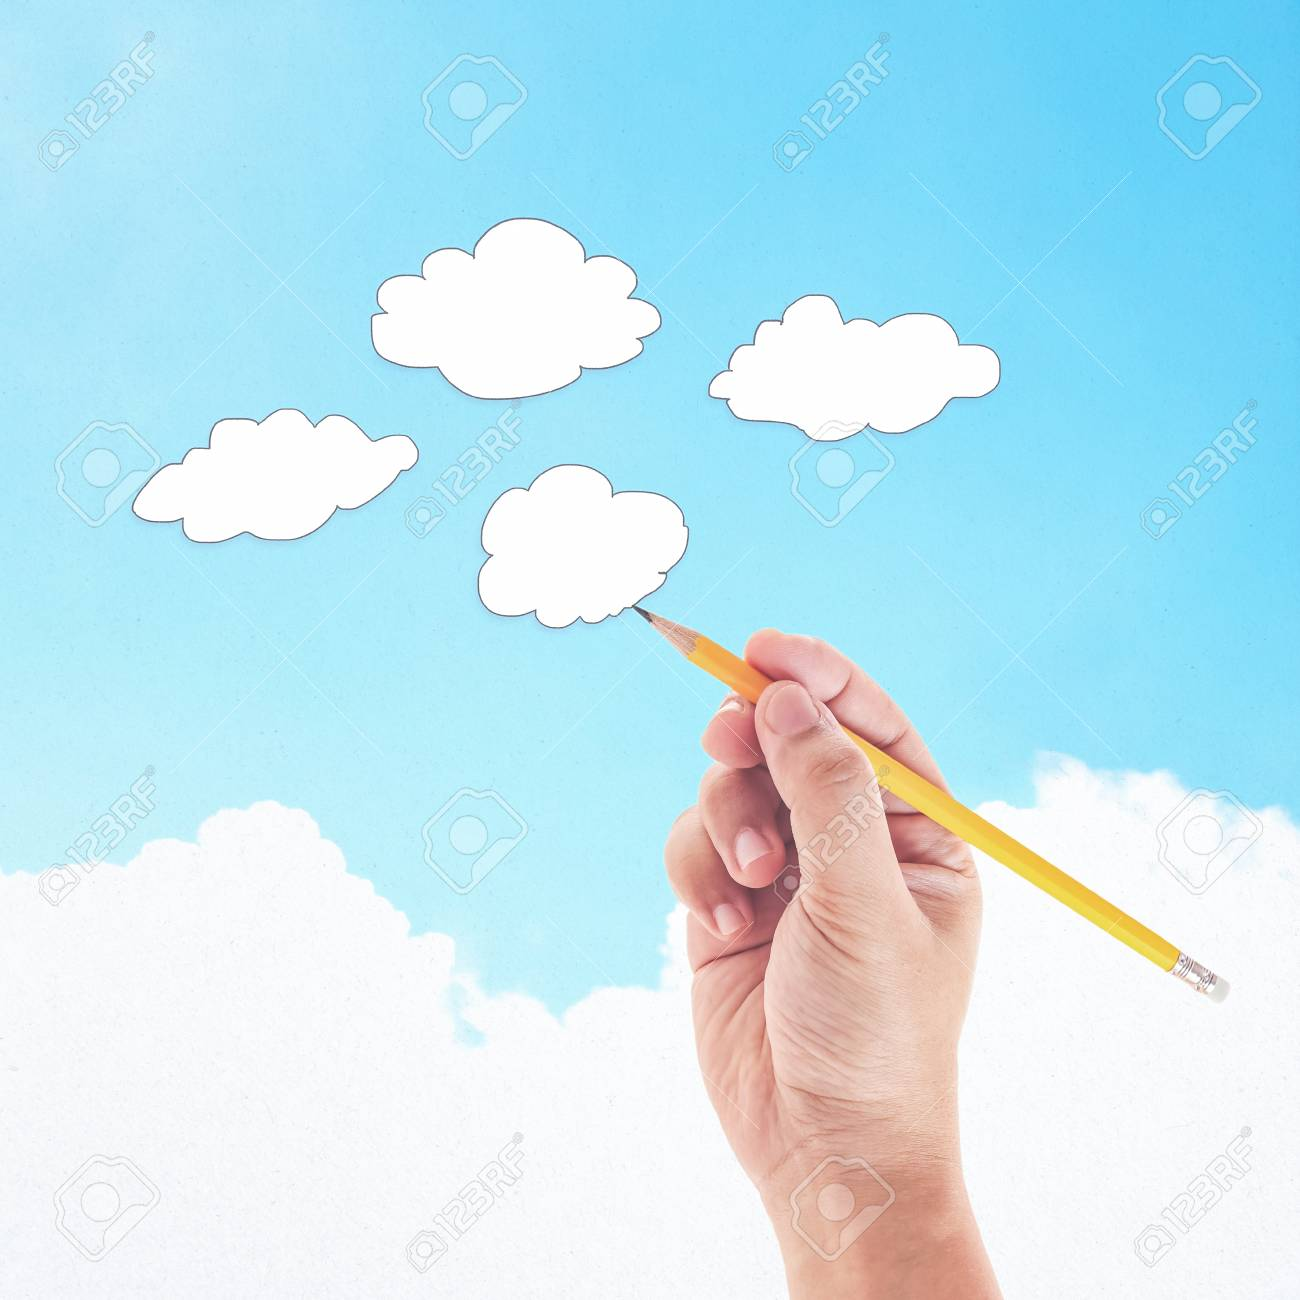 Hand with pencil drawing clouds on blue sky